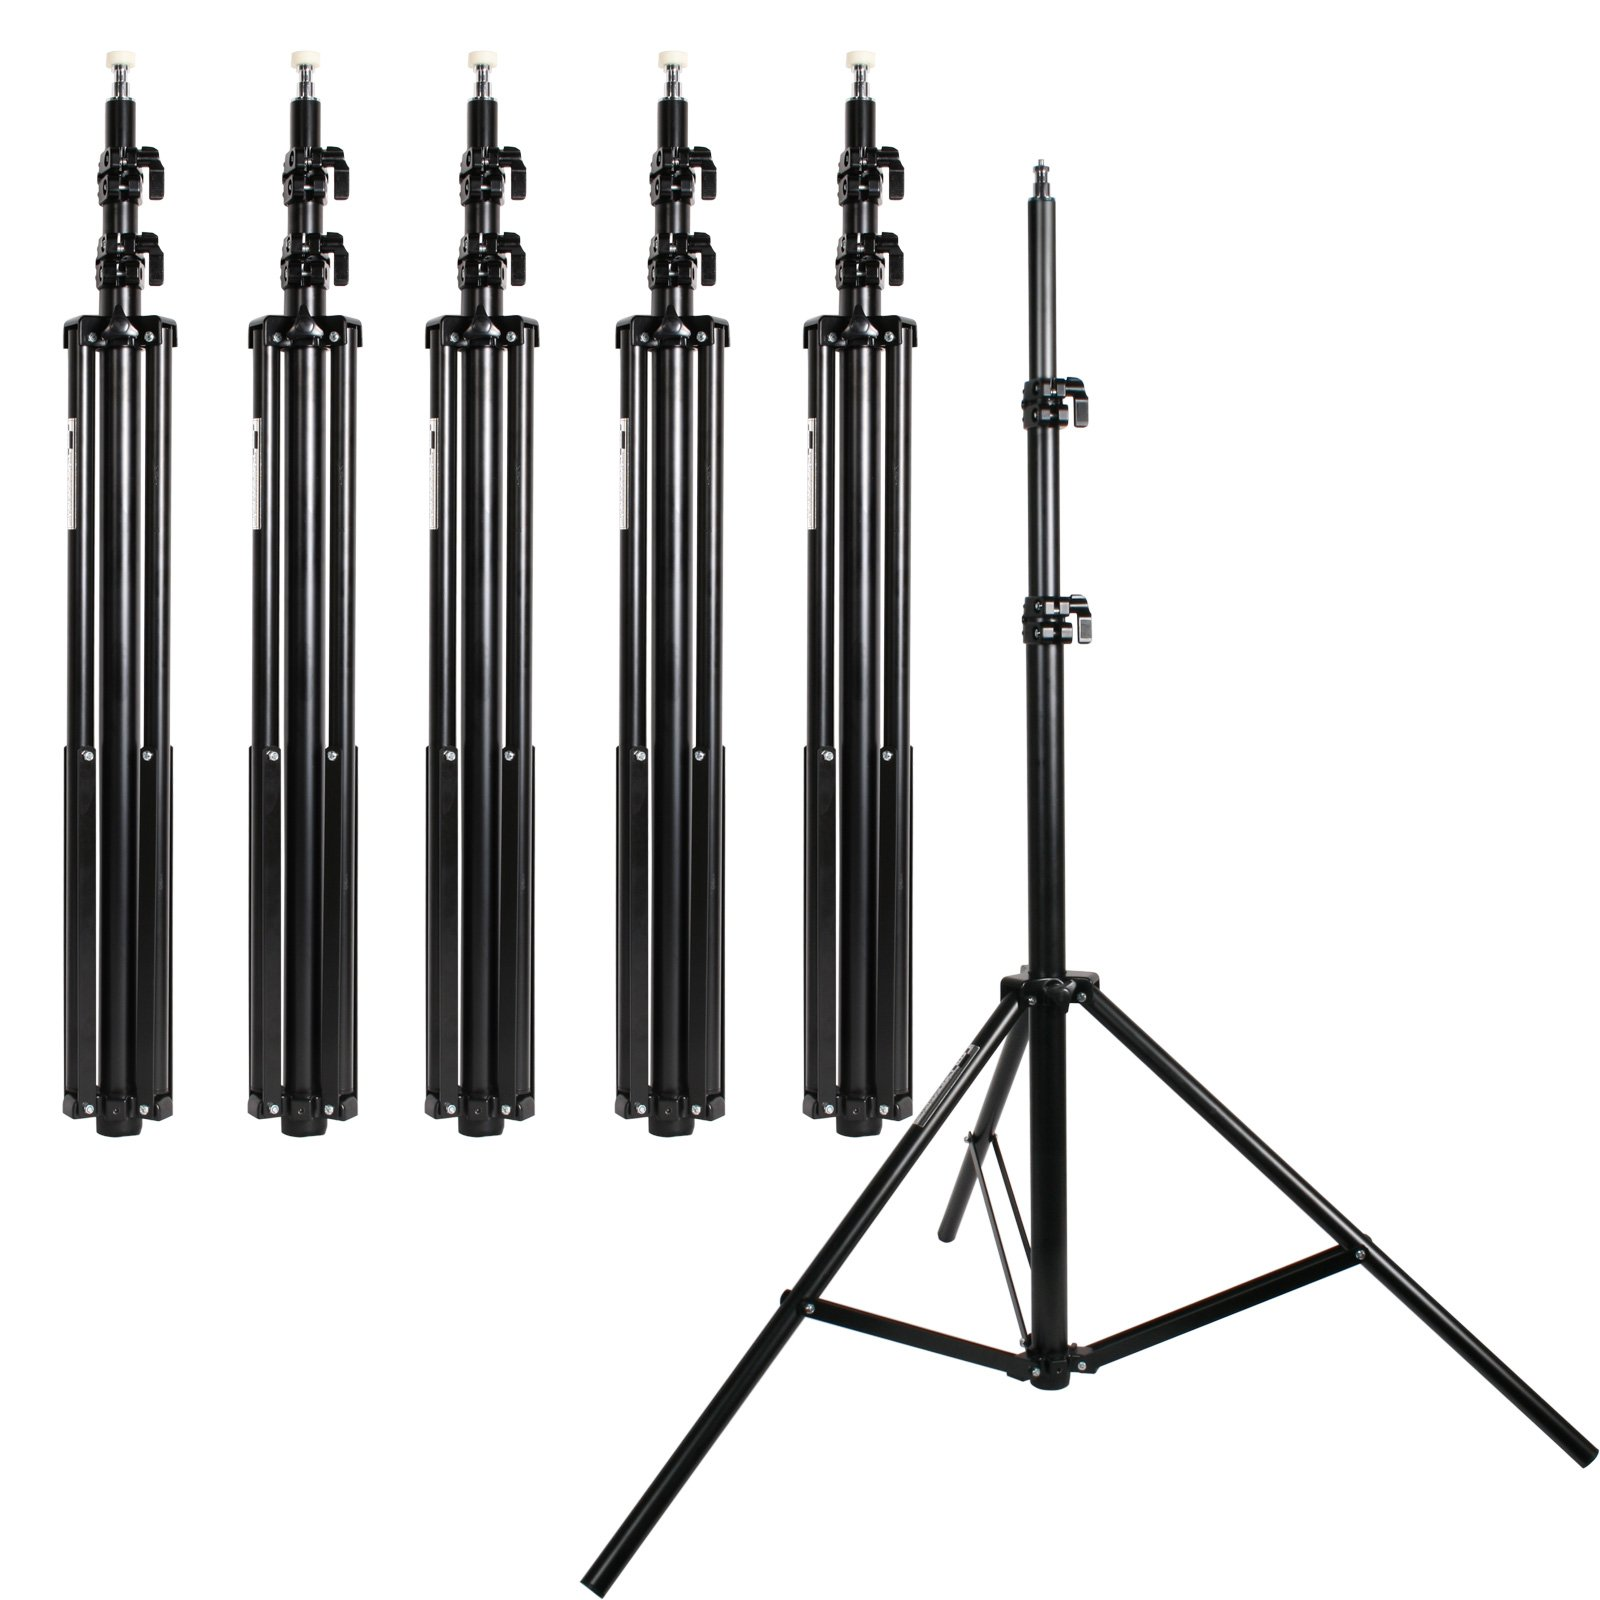 Light Stands Pack of 6 All Metal Locking Collars 7ft 6in Steve Kaeser Photographic Lighting Since 1989